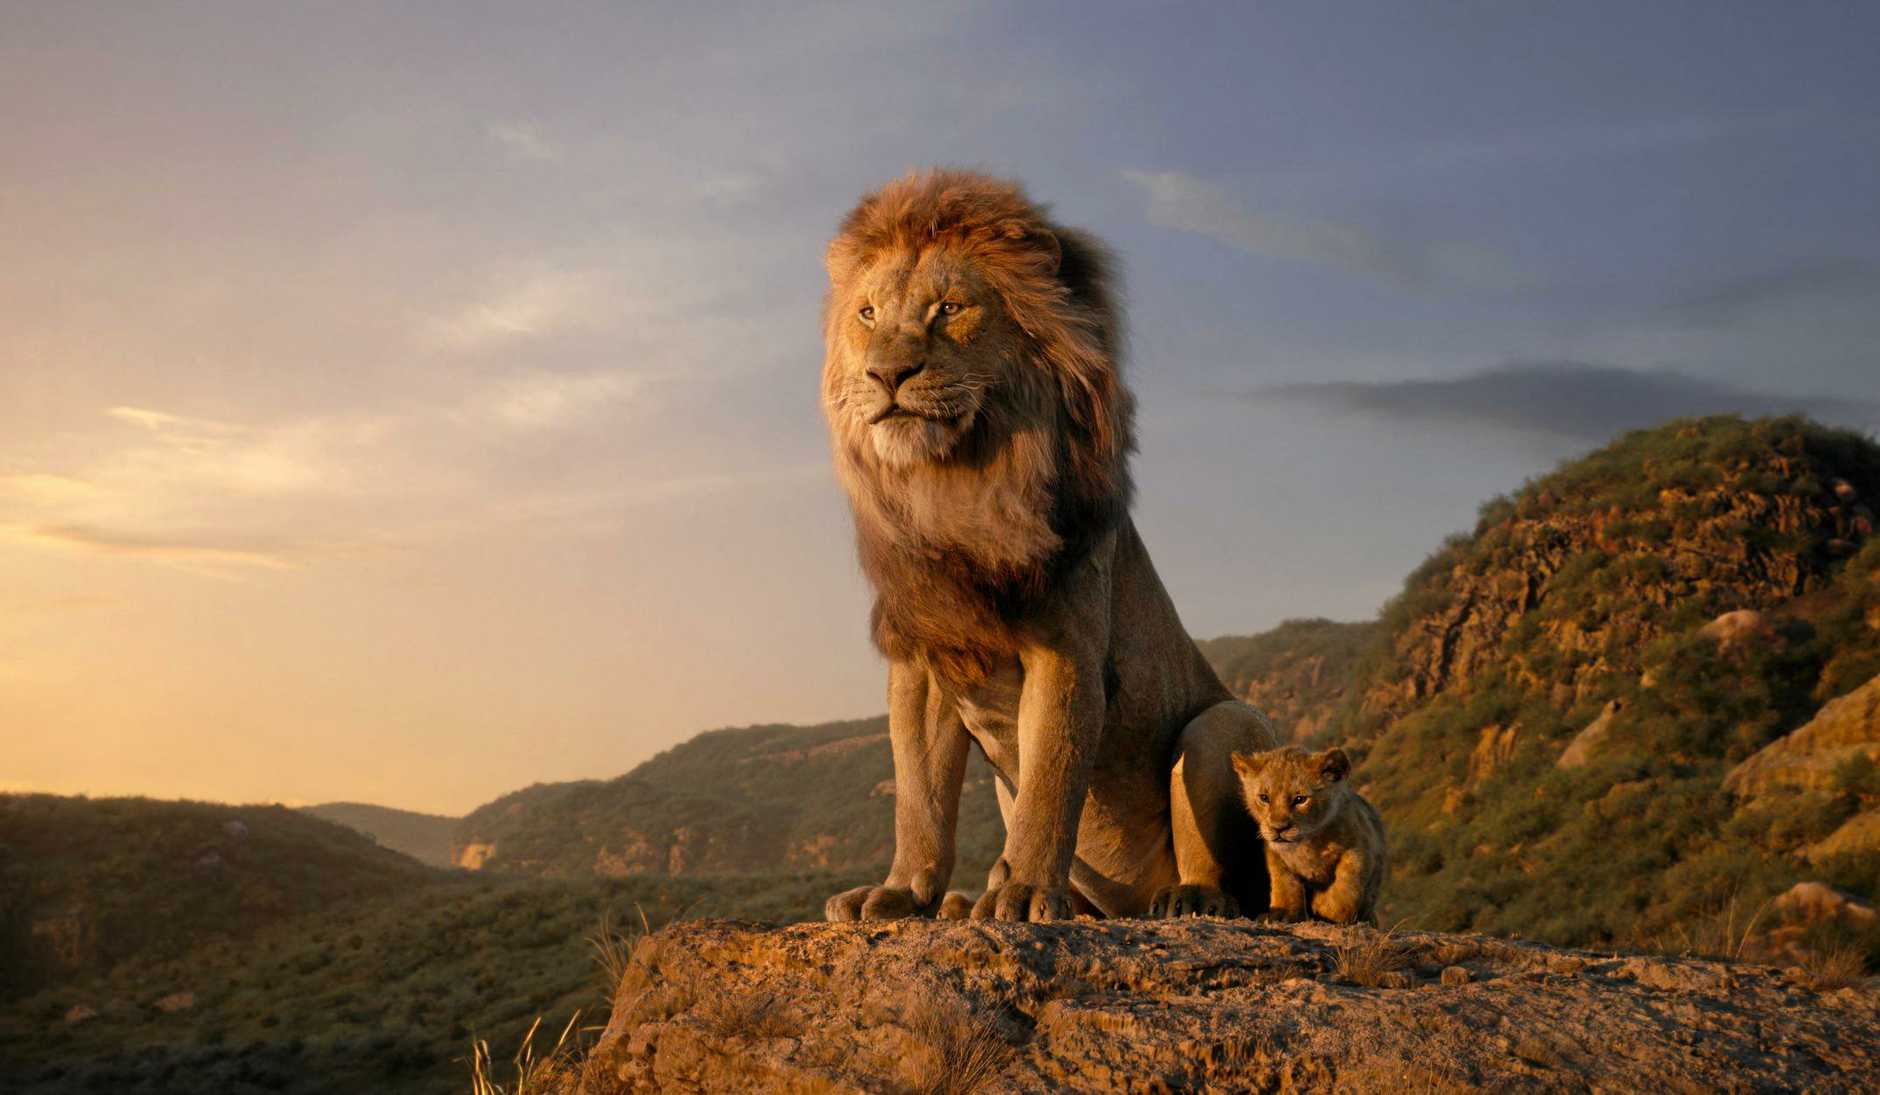 Mufasa (James Earl Jones) and Young Simba (JD McCrary) in a scene from Disney's live-action remake of the movie The Lion King.